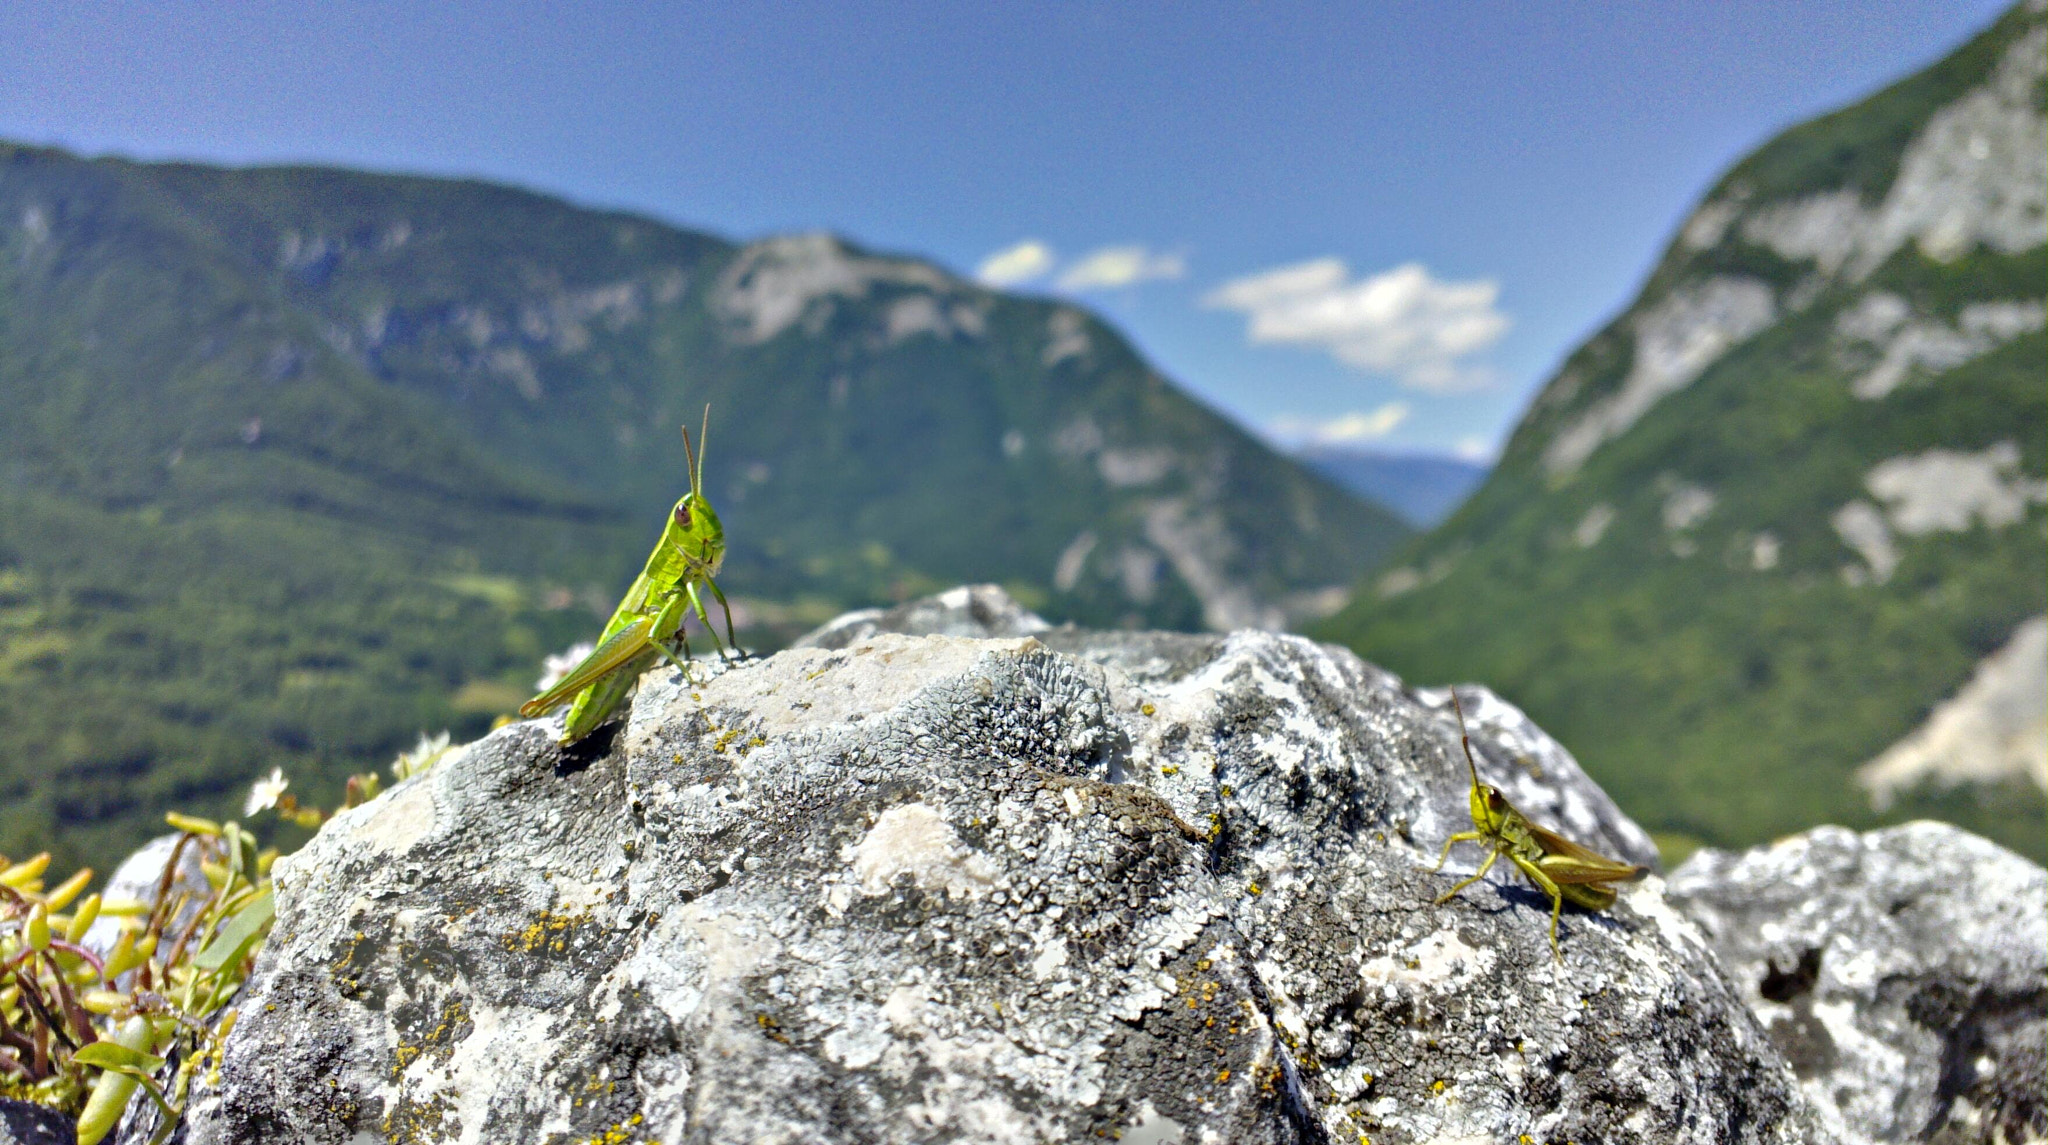 Photograph Grasshoppers in the mountains by Jouni Elomaa on 500px